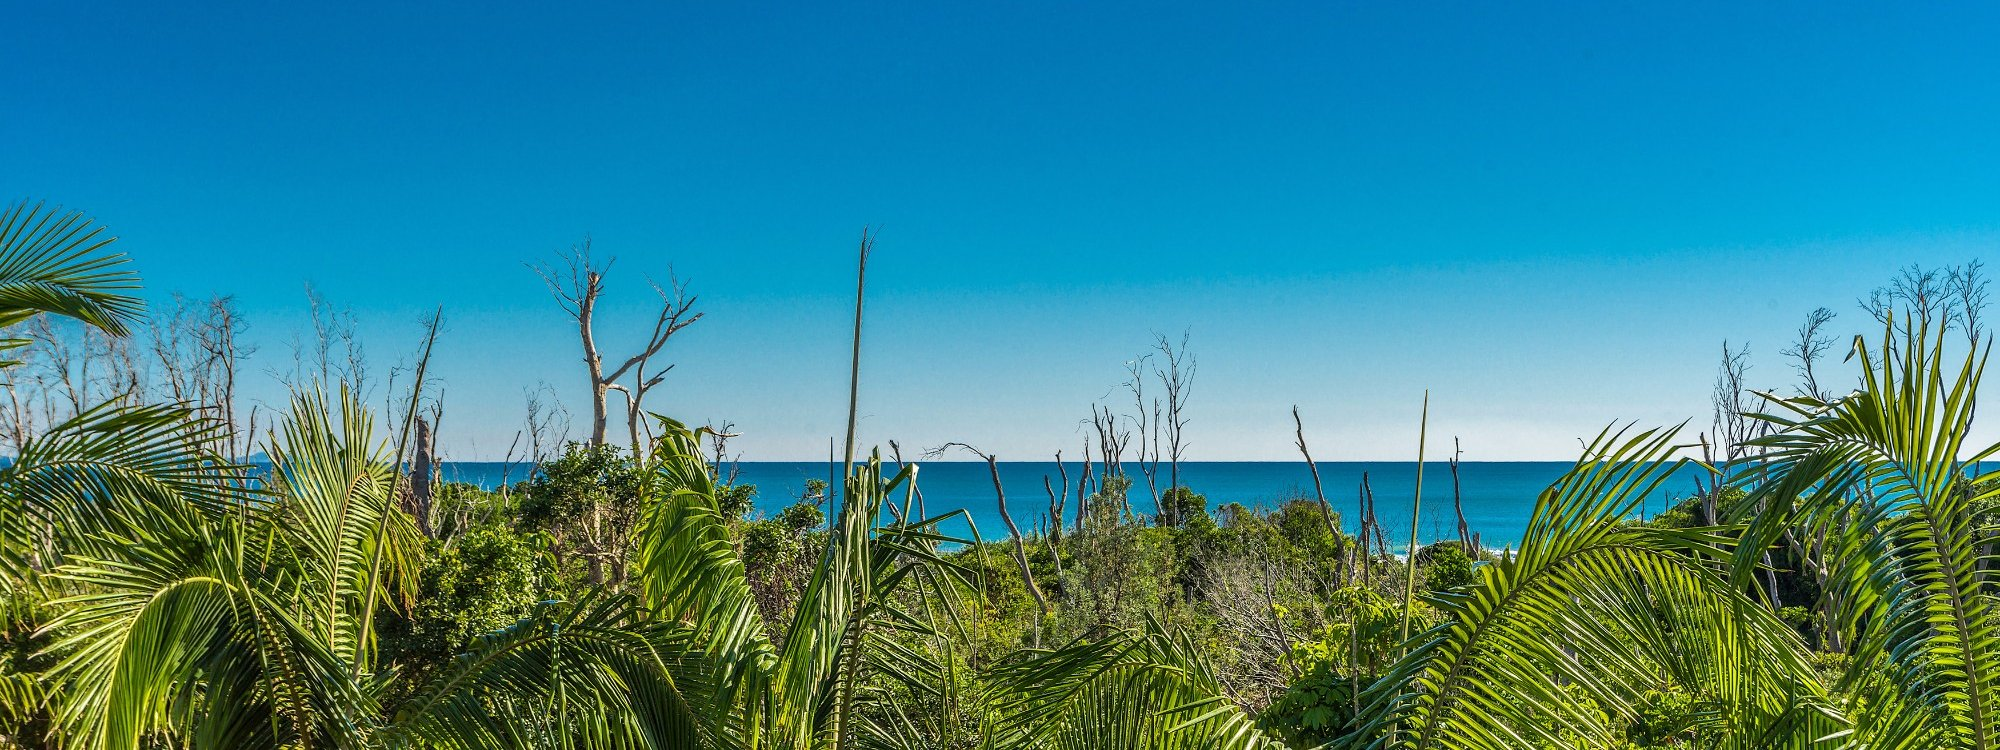 Kiah Beachside - Belongil Beach - Byron Bay - ocean views